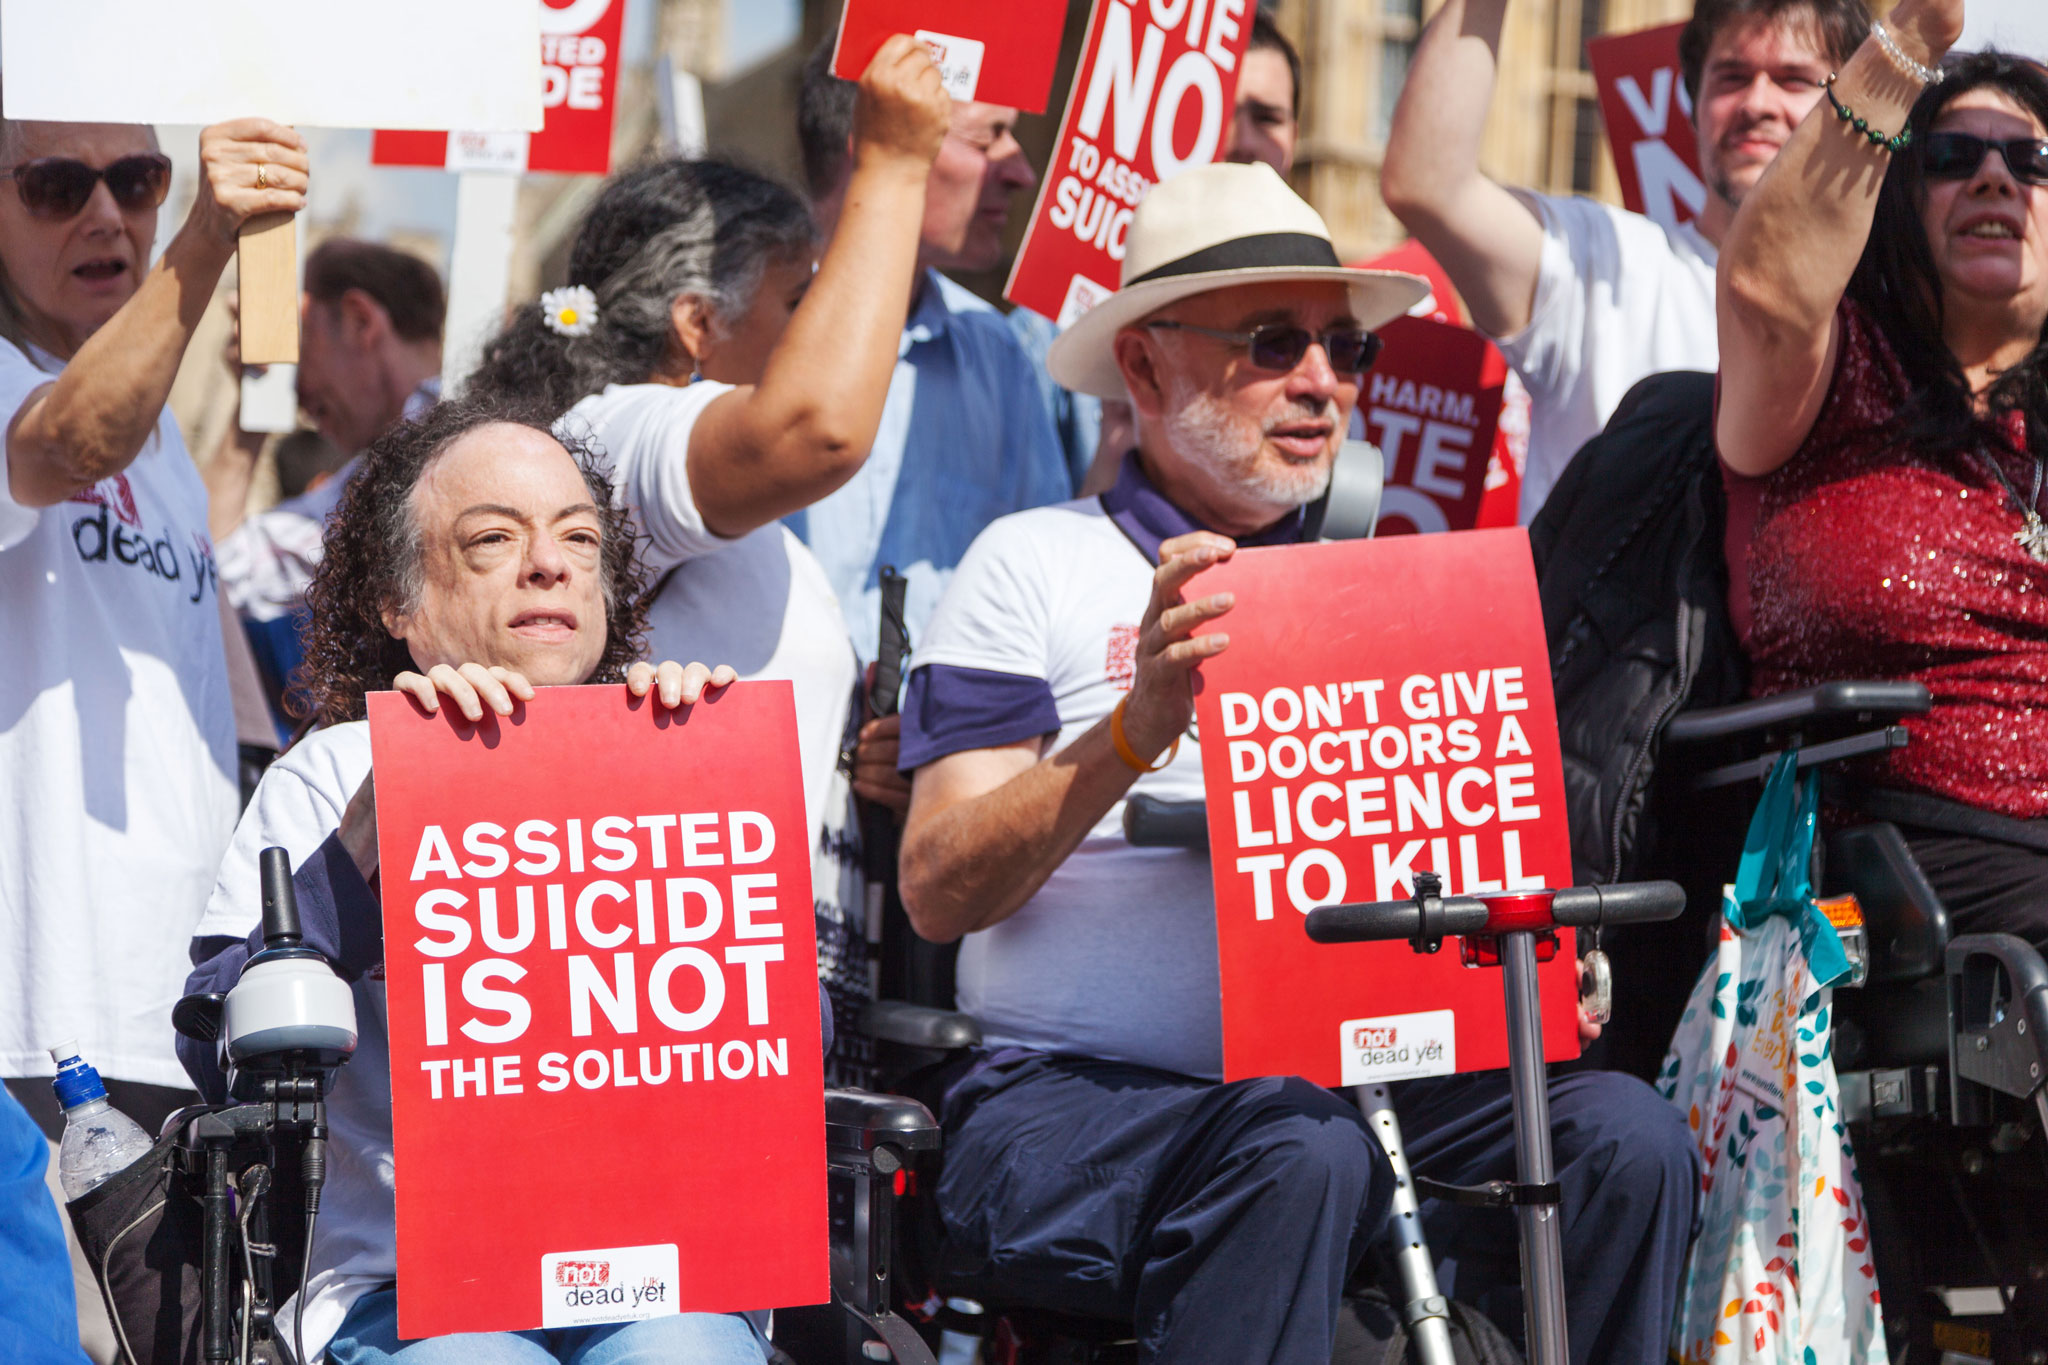 """Activists from Not Dead Yet UK are gathered with signs reading """"Assisted Suicide is Not the Solution"""" and """"Don't Give Doctors a Licence to Kill."""""""